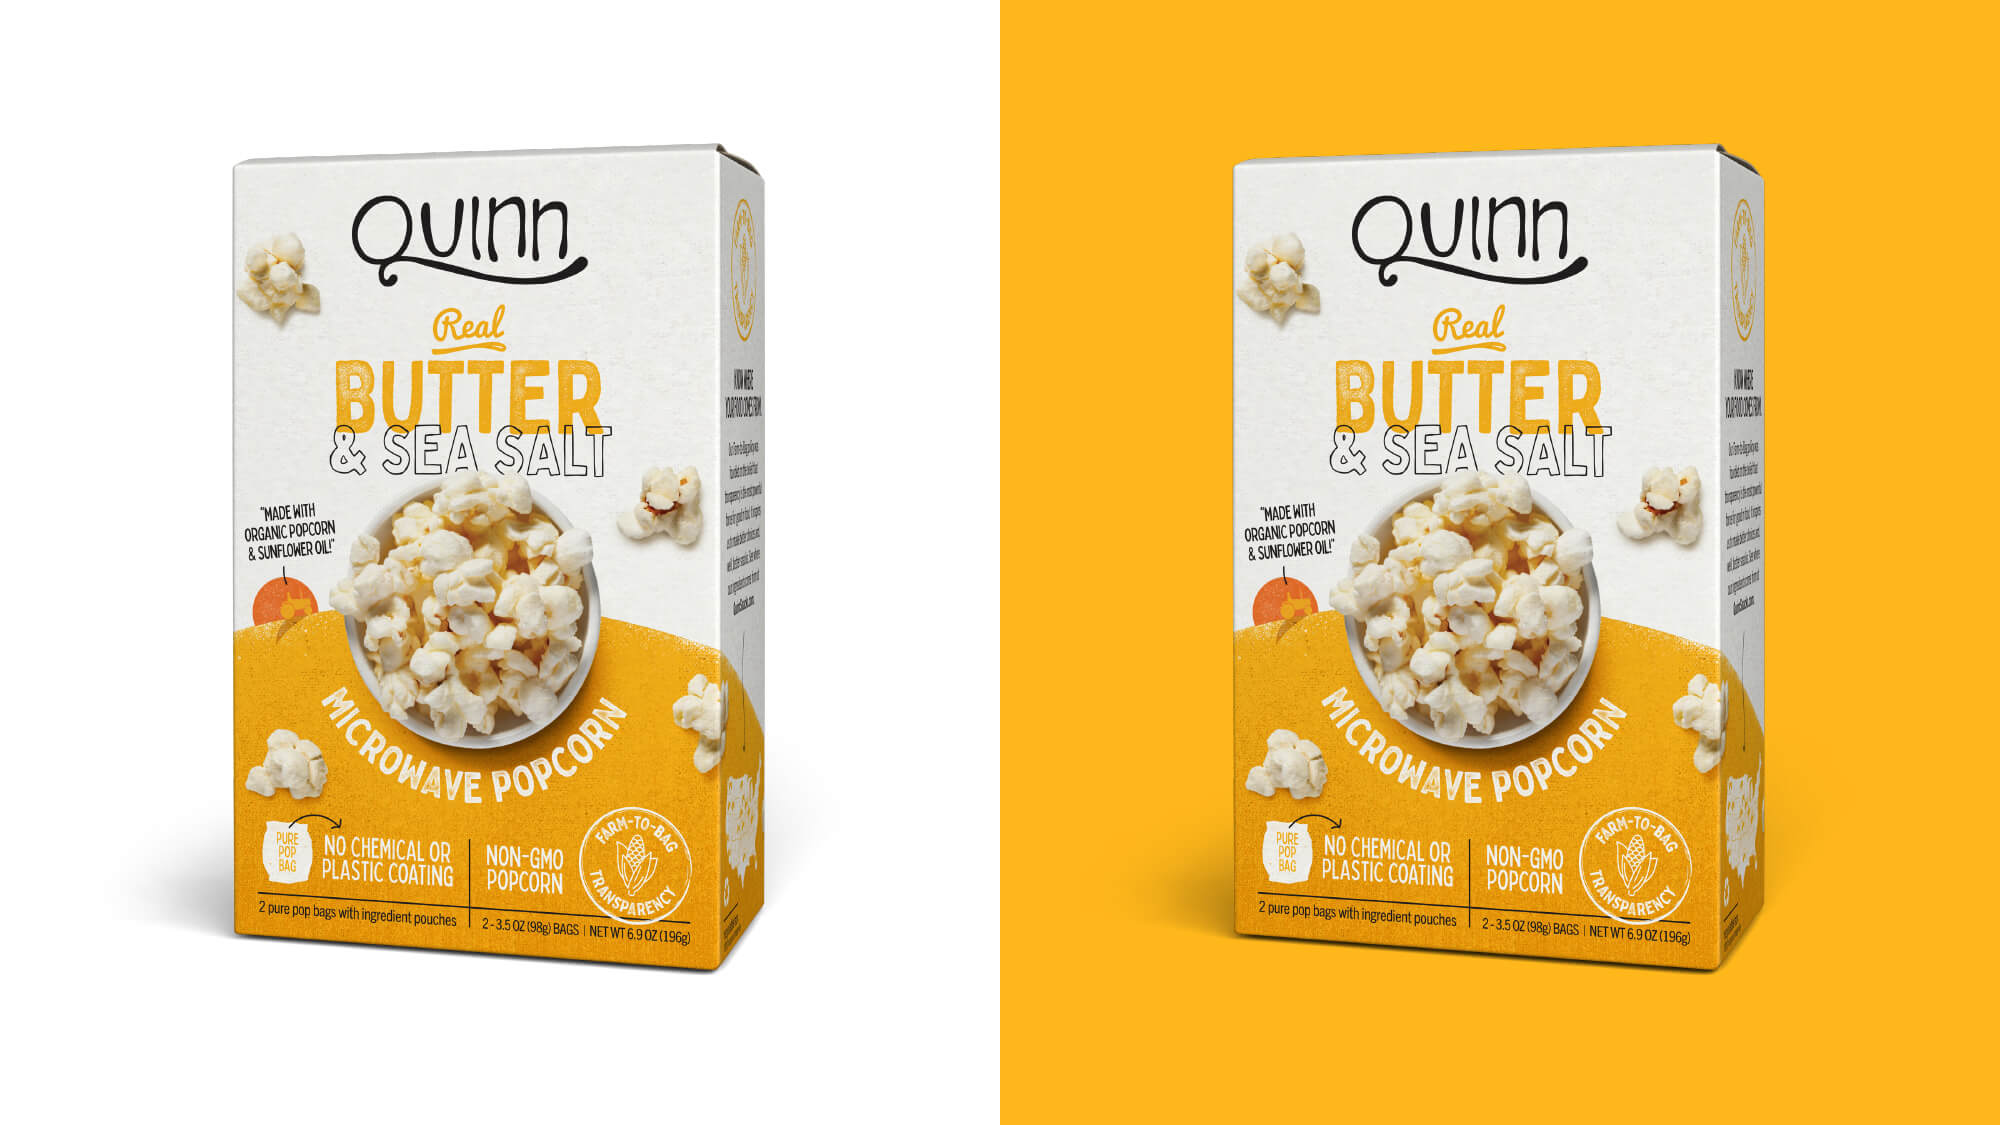 Quinn Popcorn Packaging - Real Butter